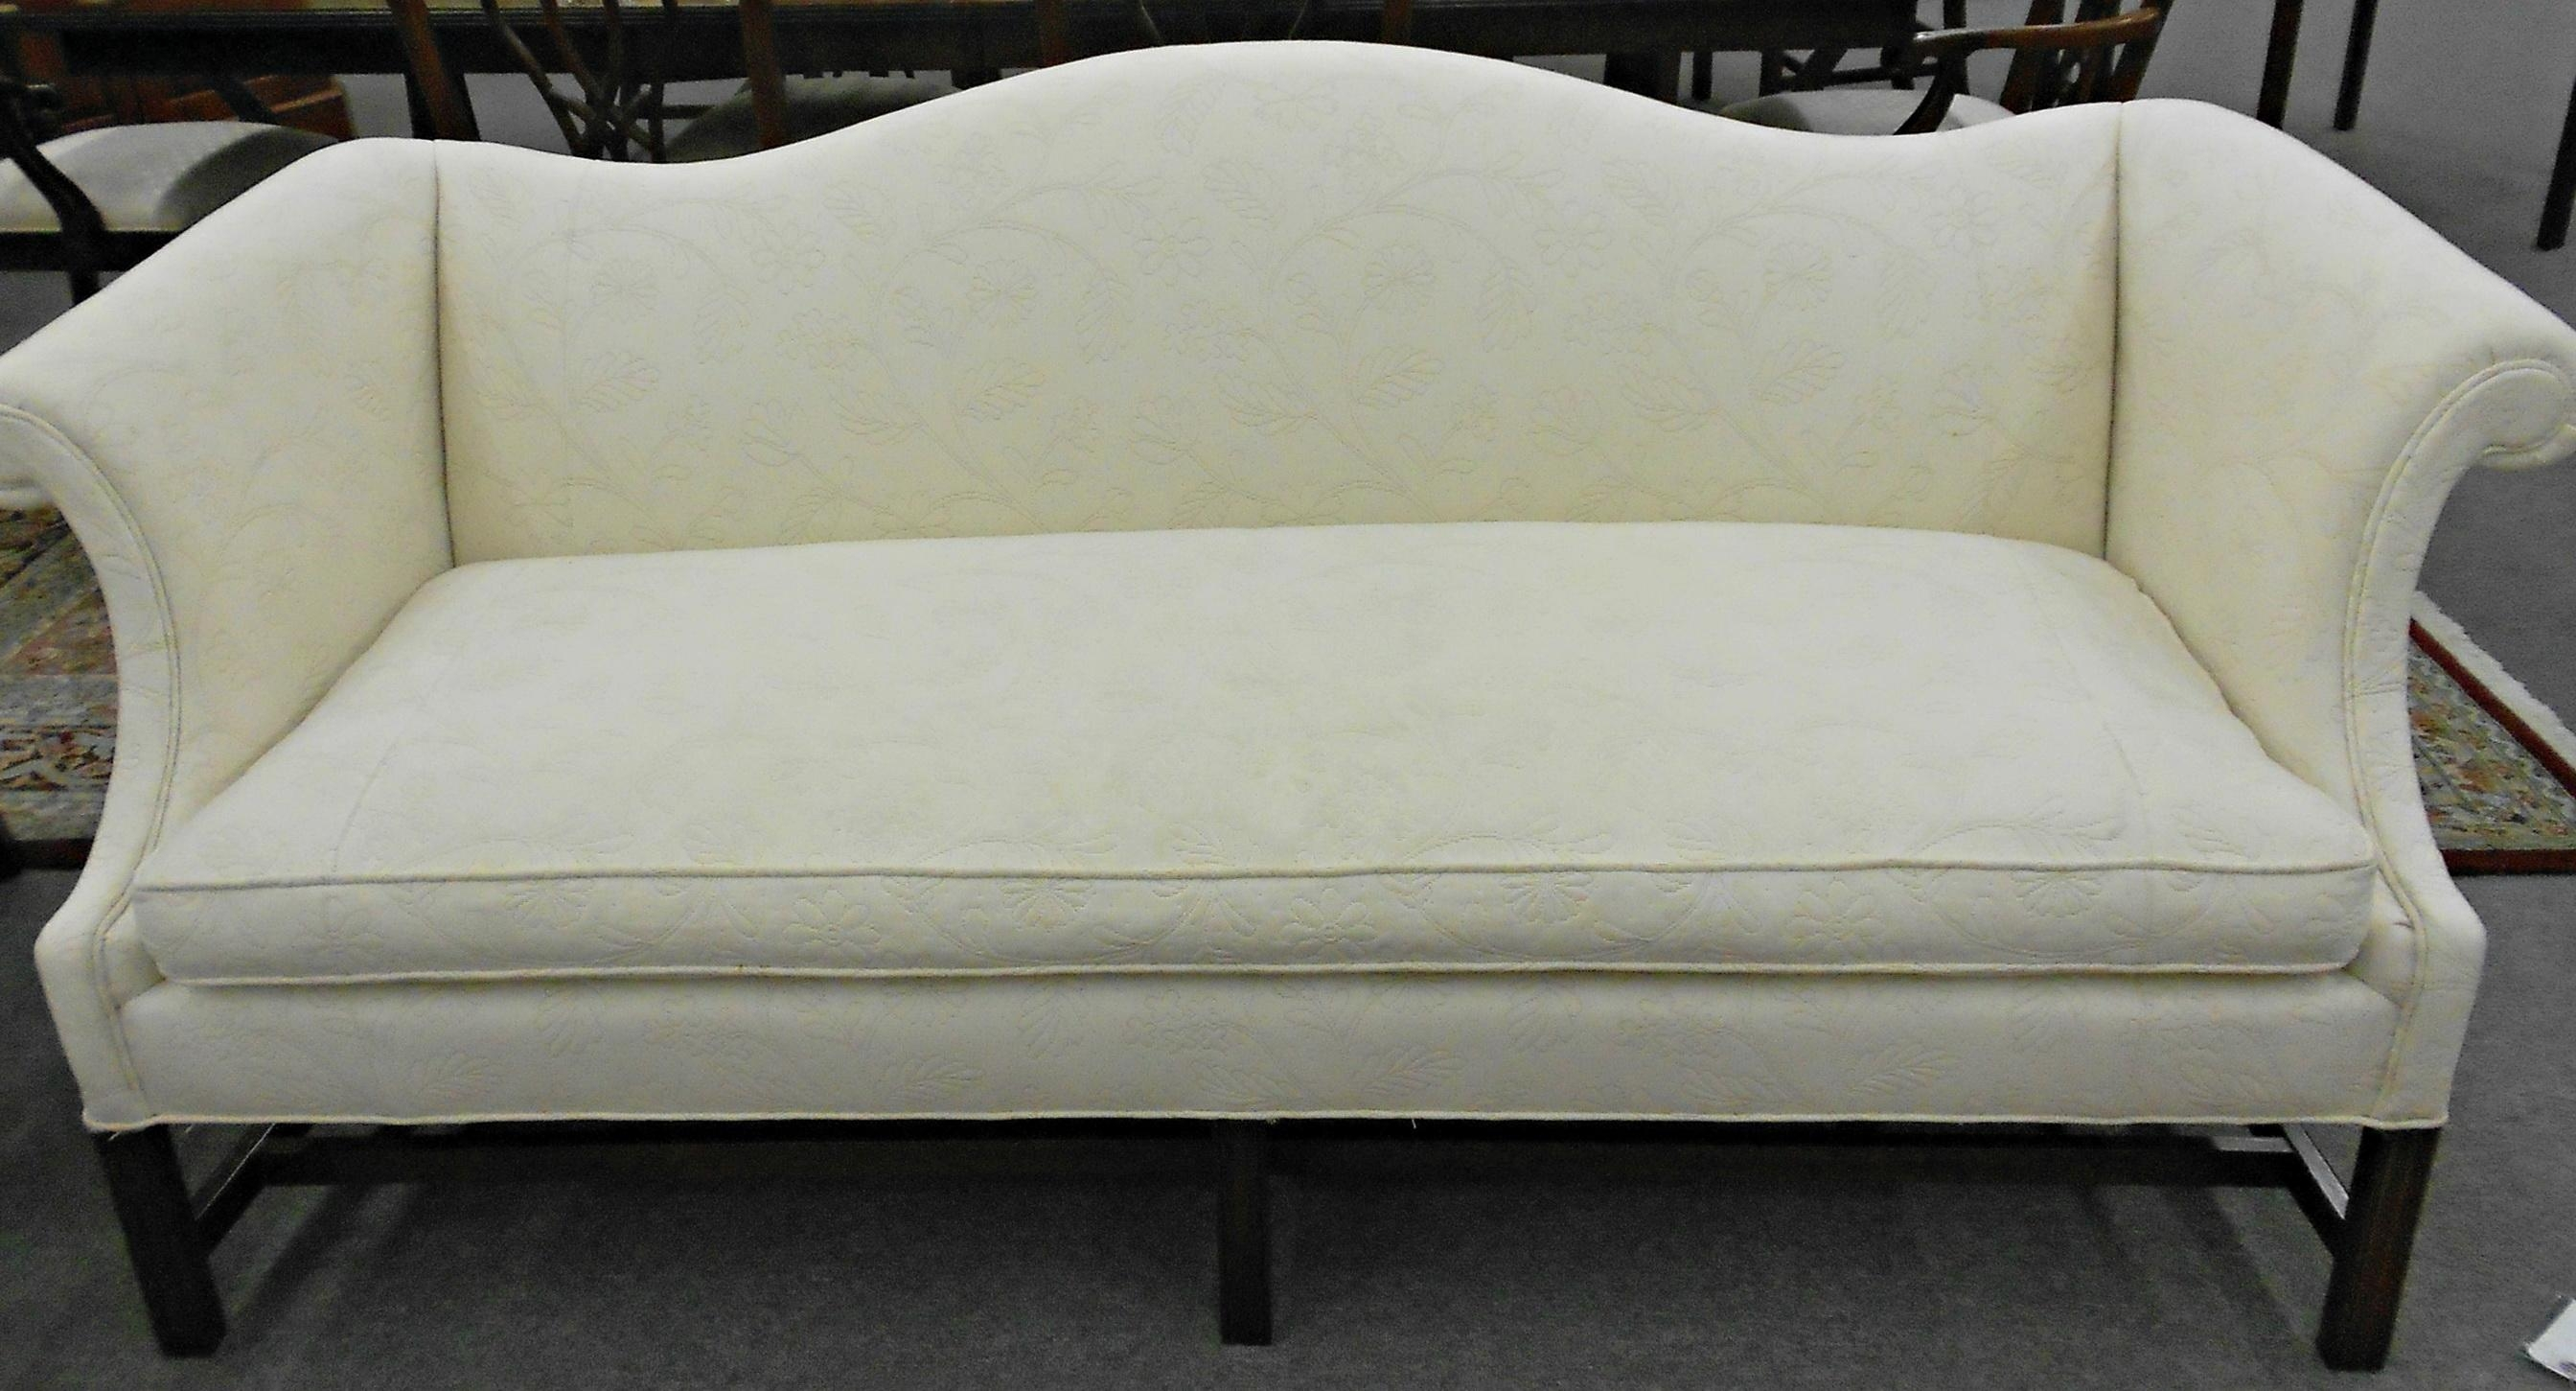 Sofas Center : Sofa White Camel Back Couch Beautiful Slipcover For Inside Camelback Sofa Slipcovers (Image 18 of 19)